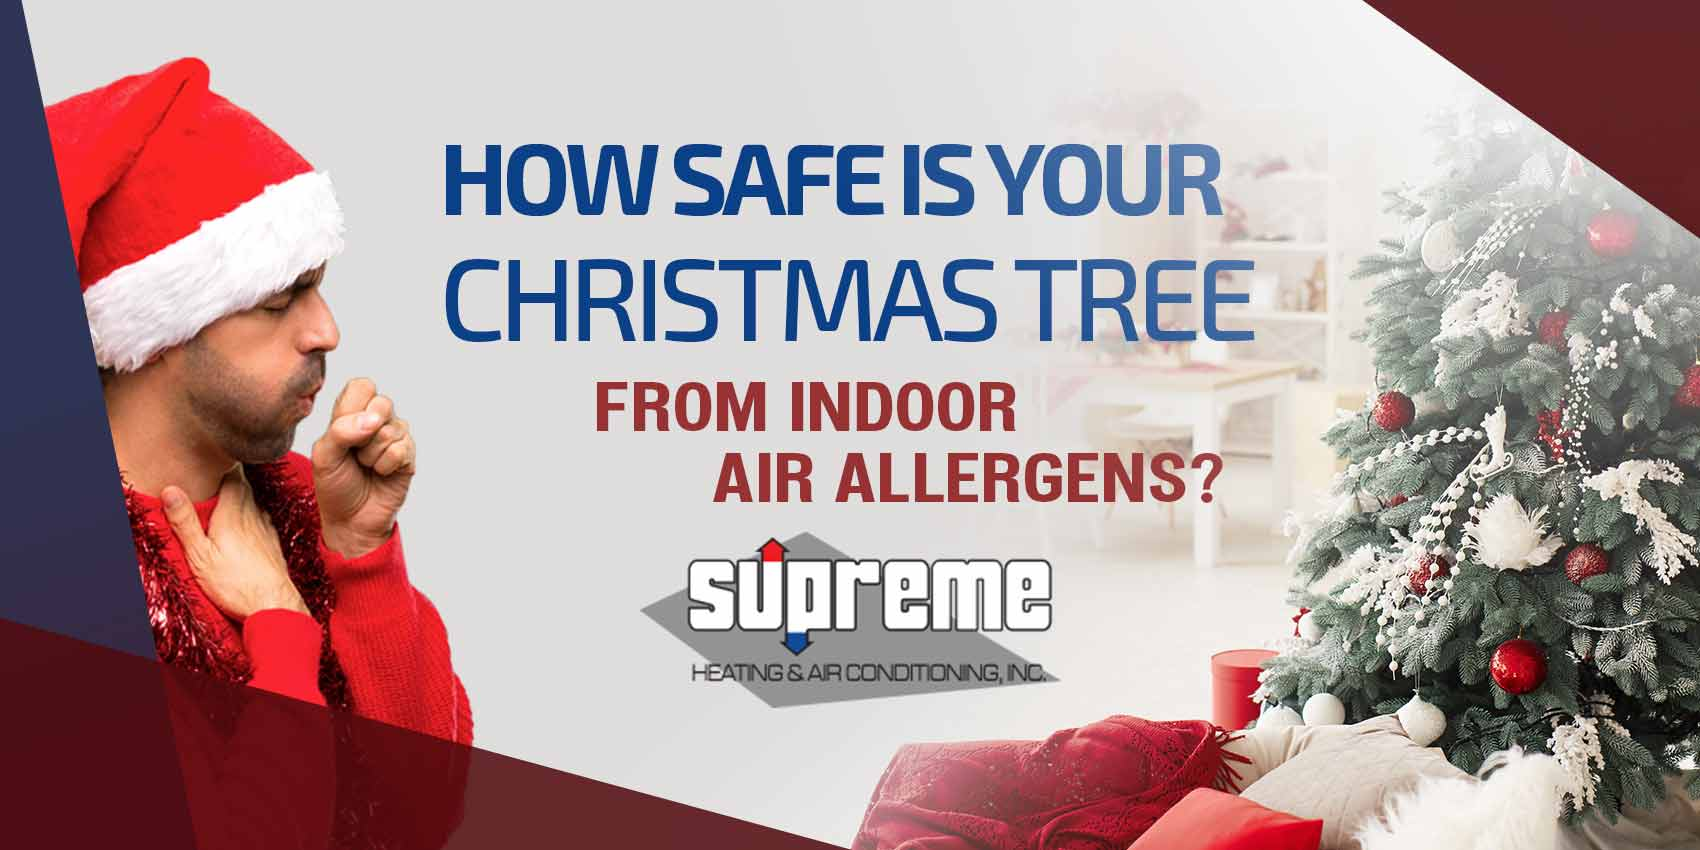 How Safe is Your Christmas Tree From Indoor Air Allergens?